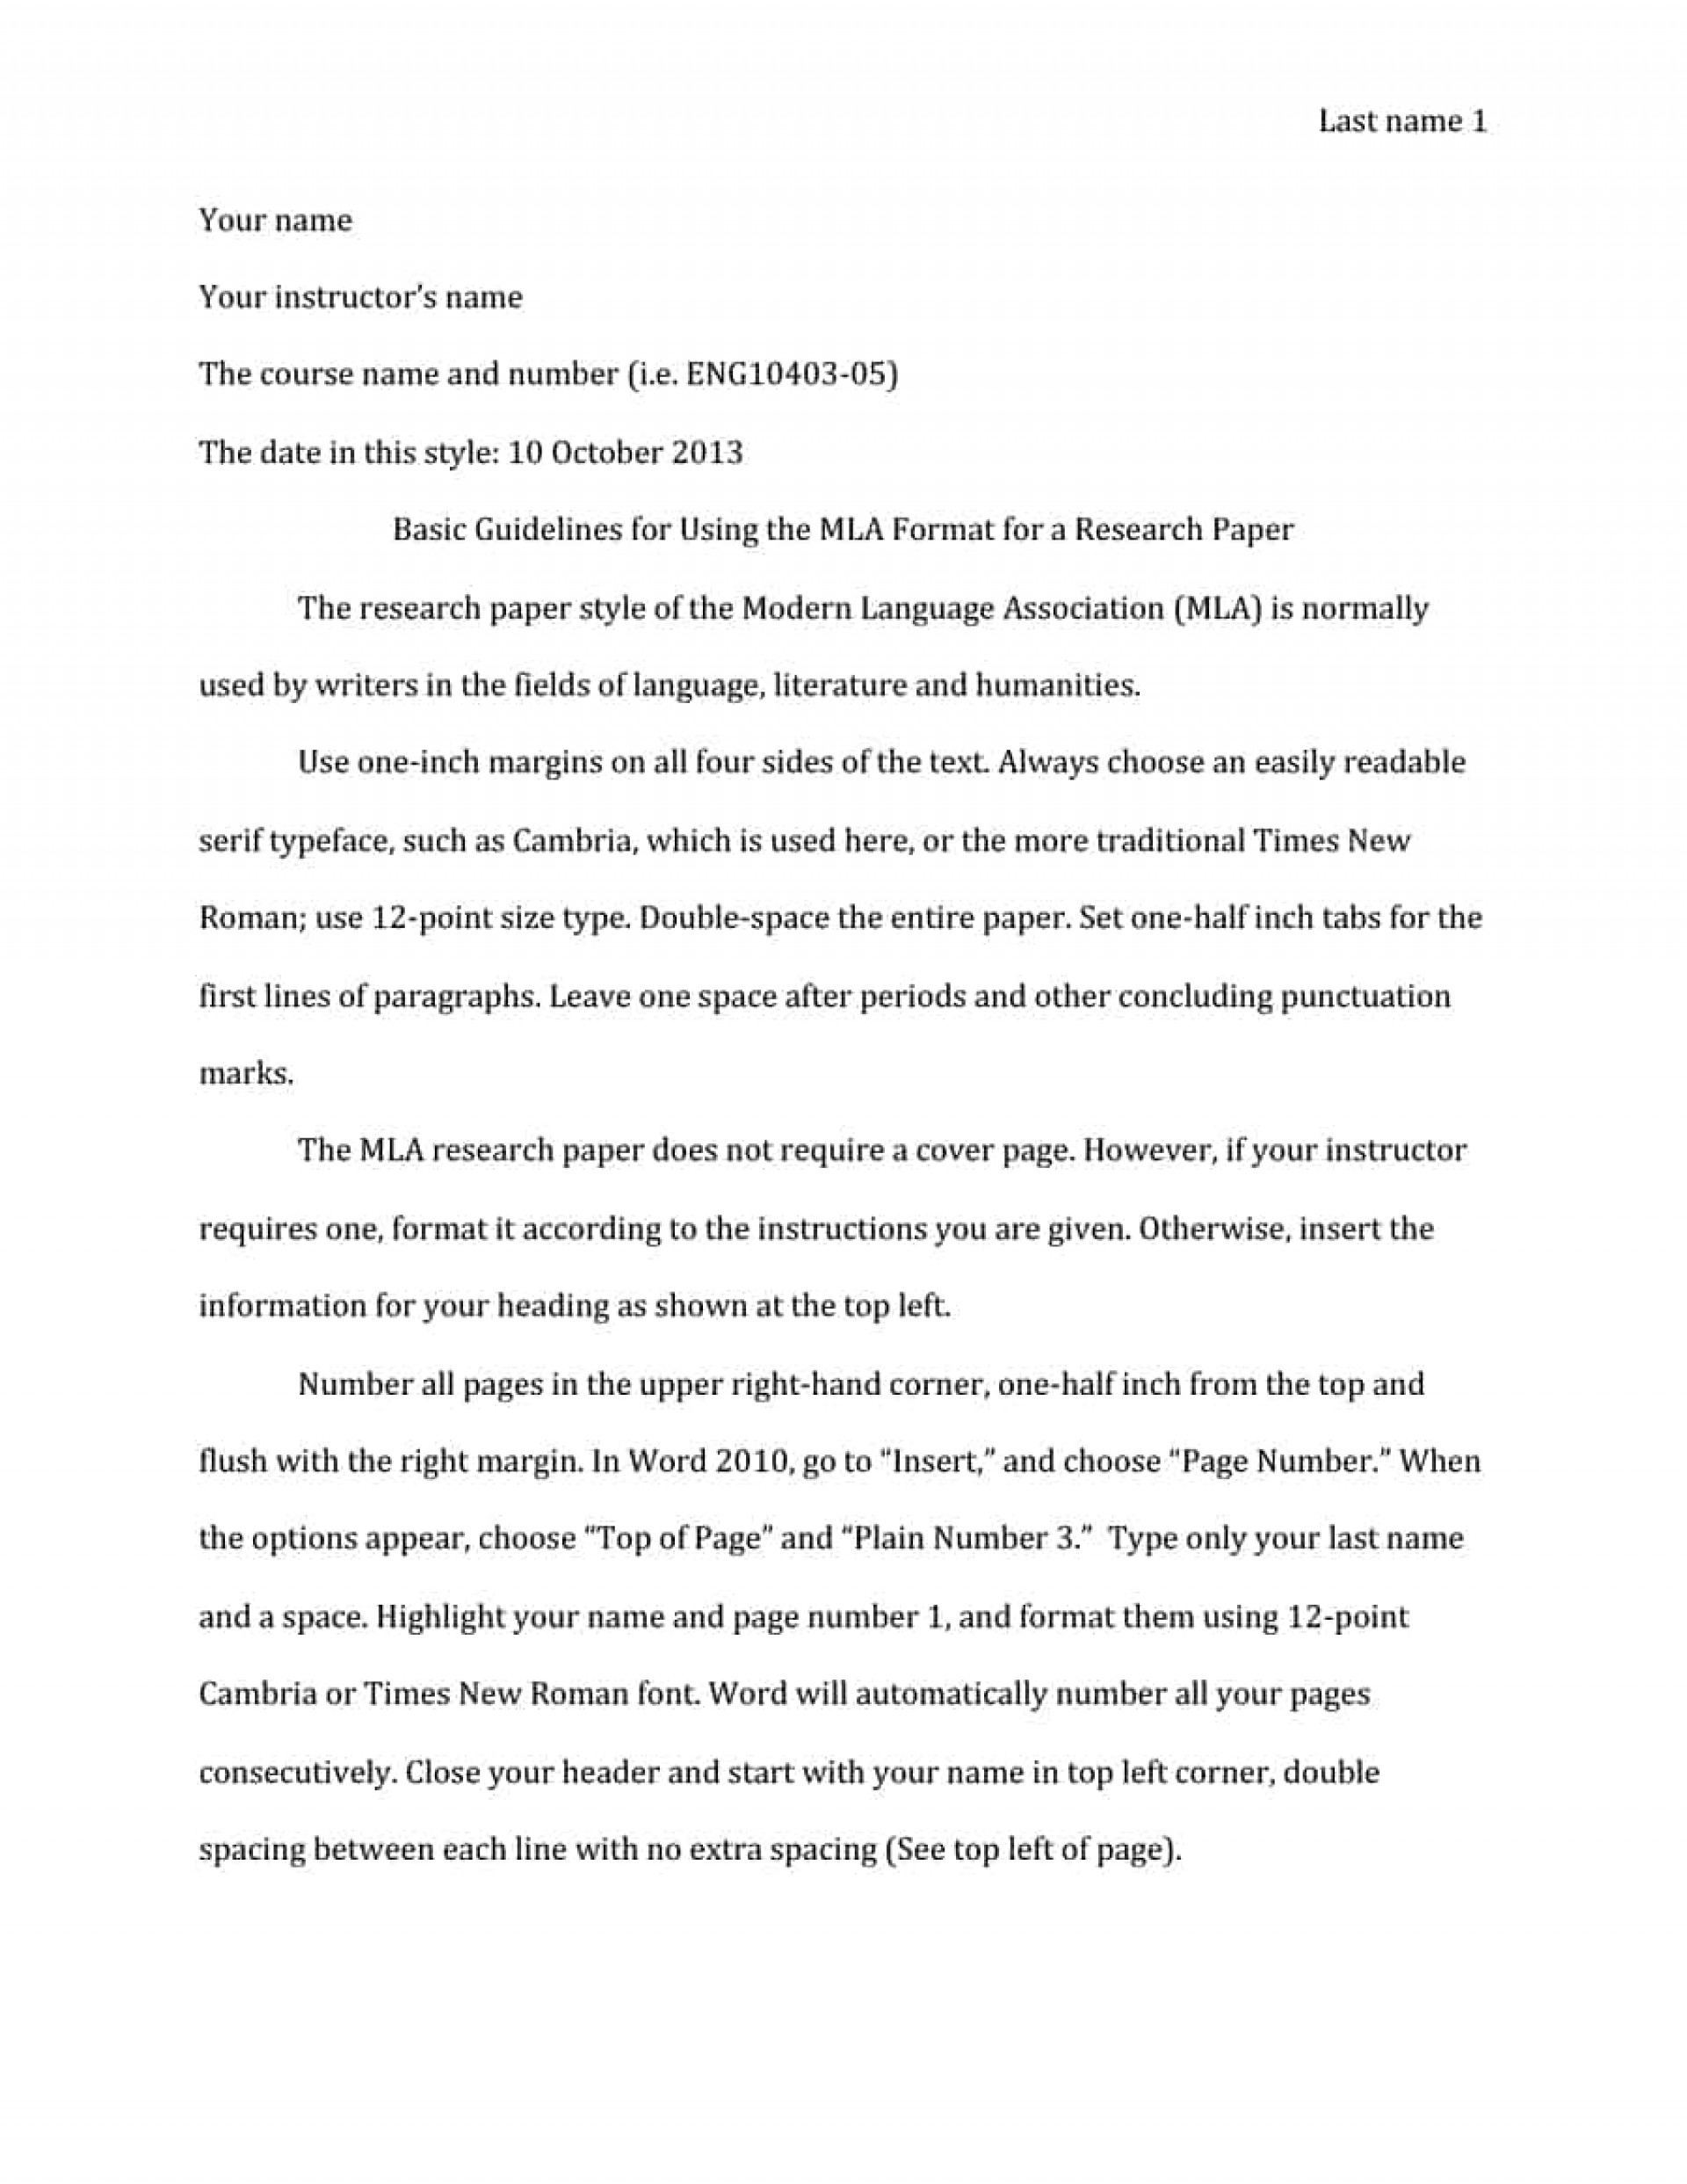 005 Research Paper In Mla Format Template Unbelievable A Written Does Not Need Title Page Quote 1920